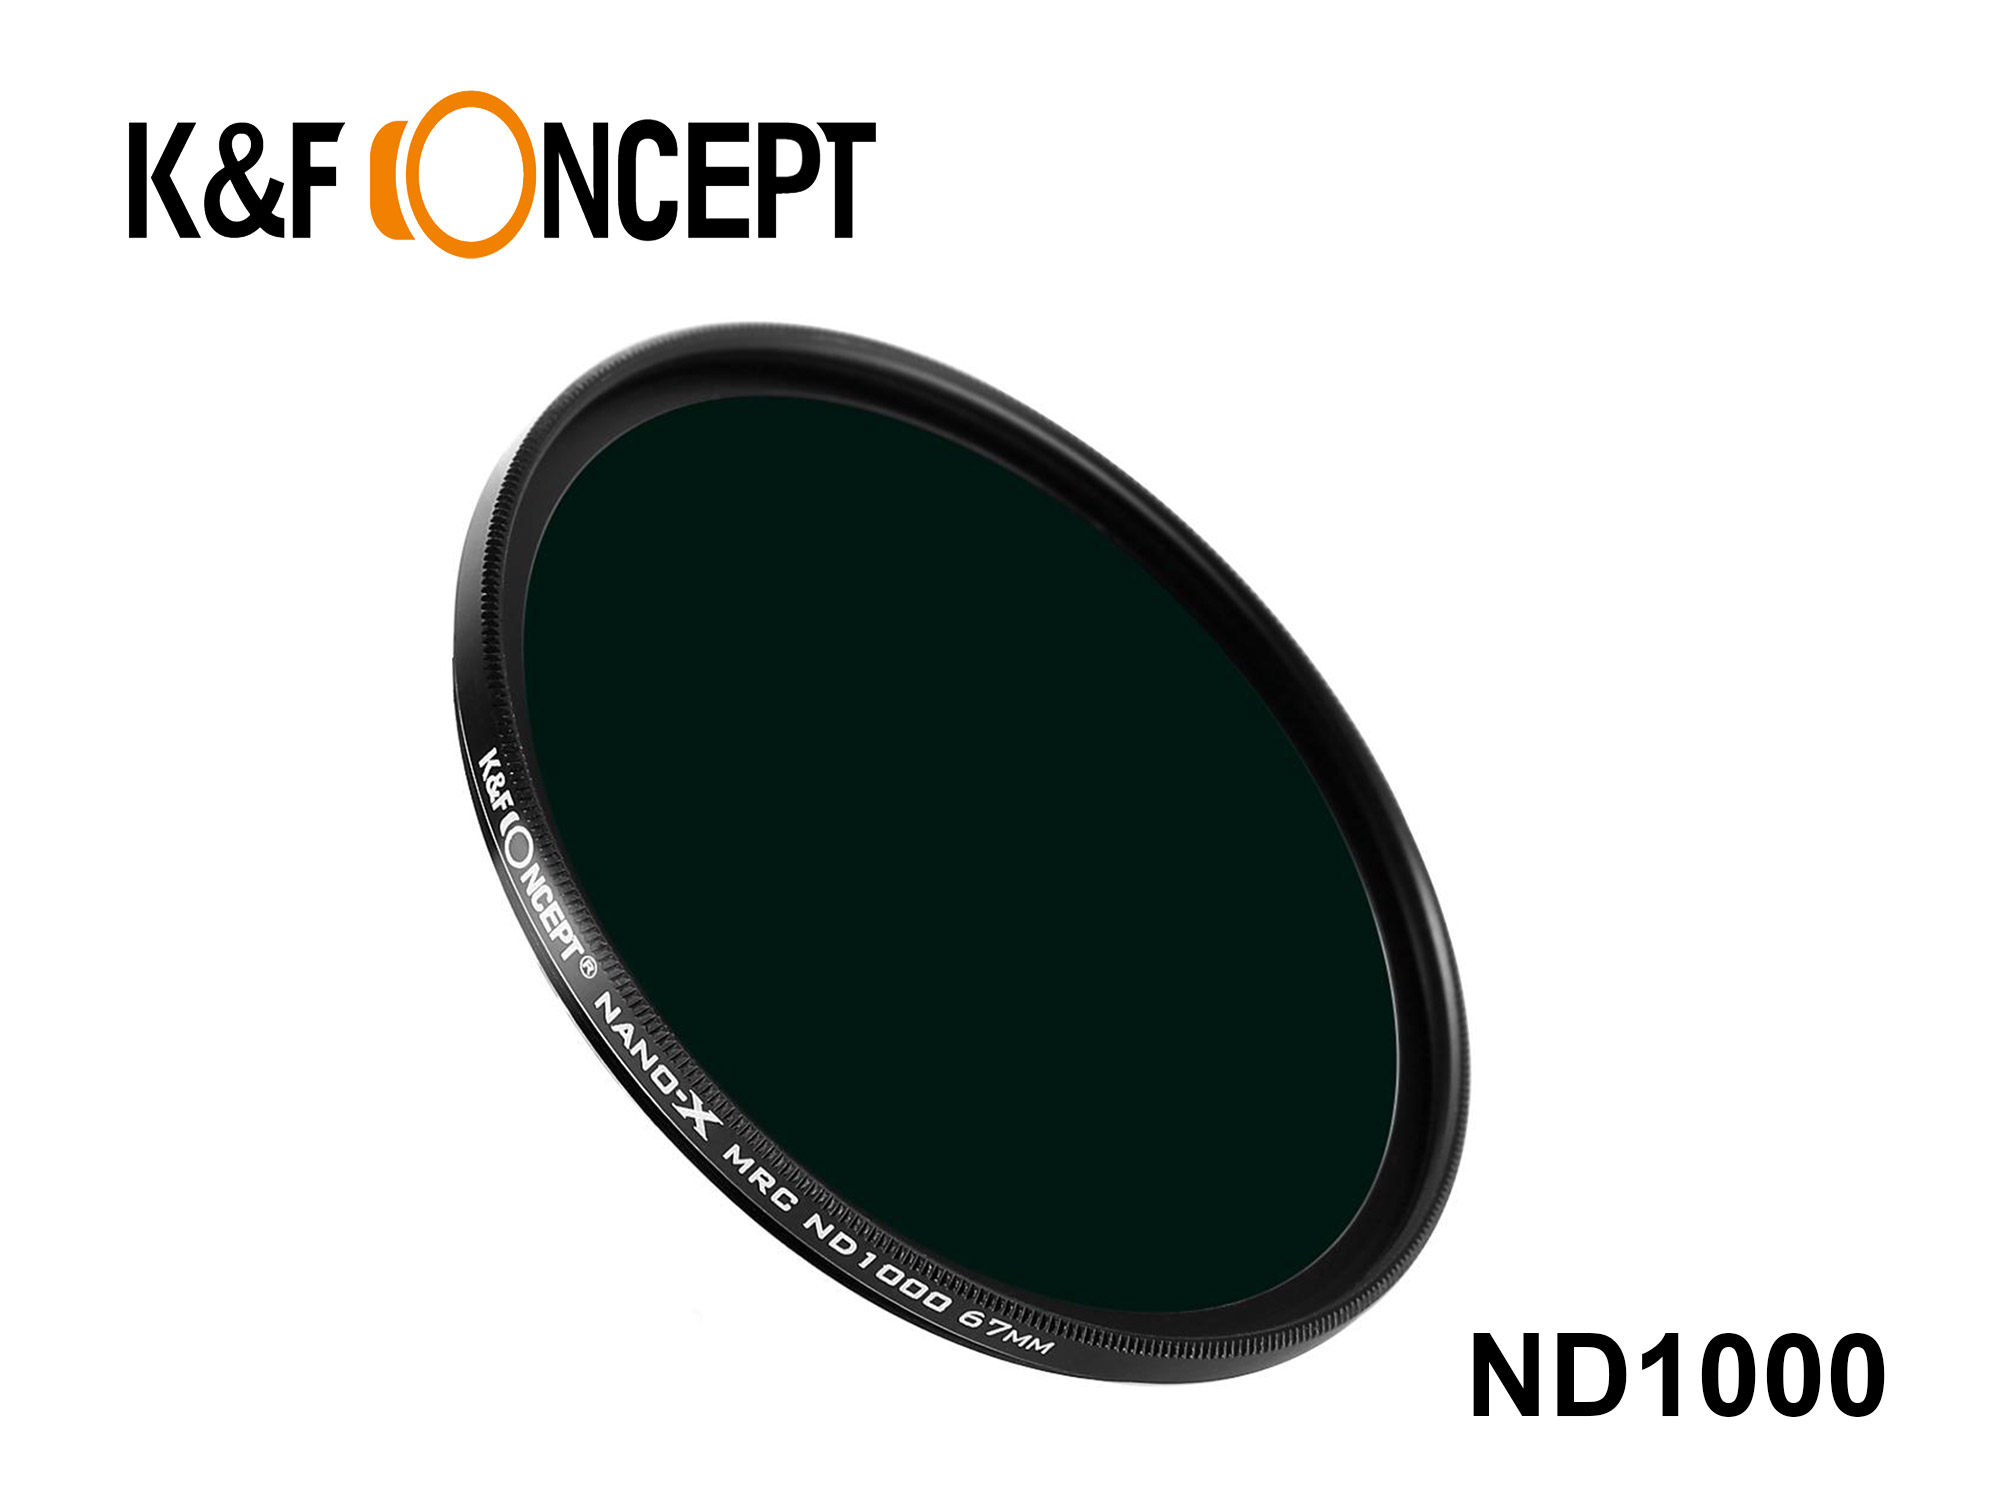 KND1000-67 - Neutral Density ND1000 Filter - Nano-X 67mm